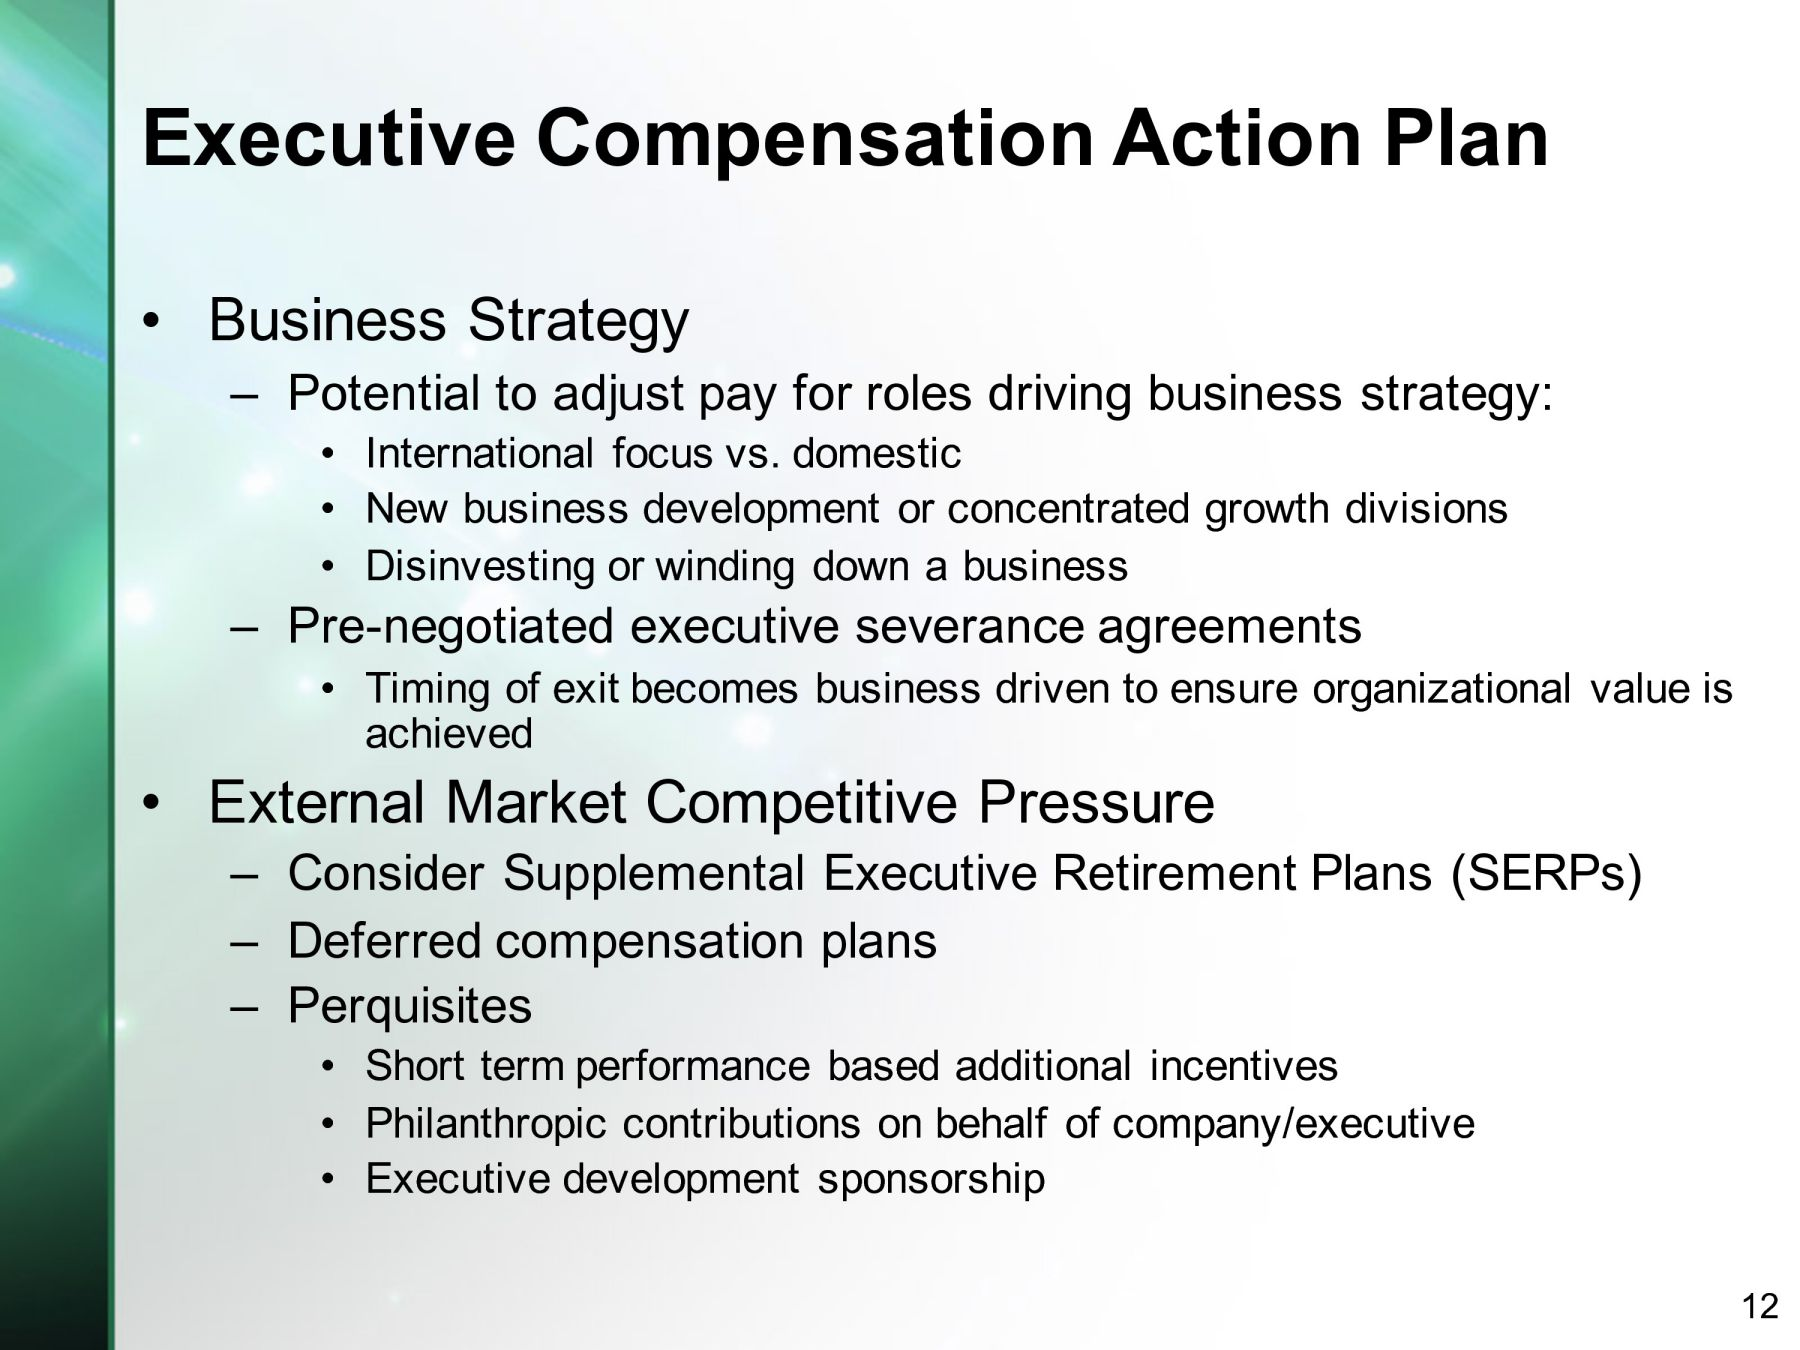 performance based compensation pay for performance essay Performance-based compensation - pay for performance essay - performance-based compensation - pay for performance corporations are looking for new ways to improve employee performance as well as remain competitive pay for performance is one method some businesses are utilizing to improve employee performance.